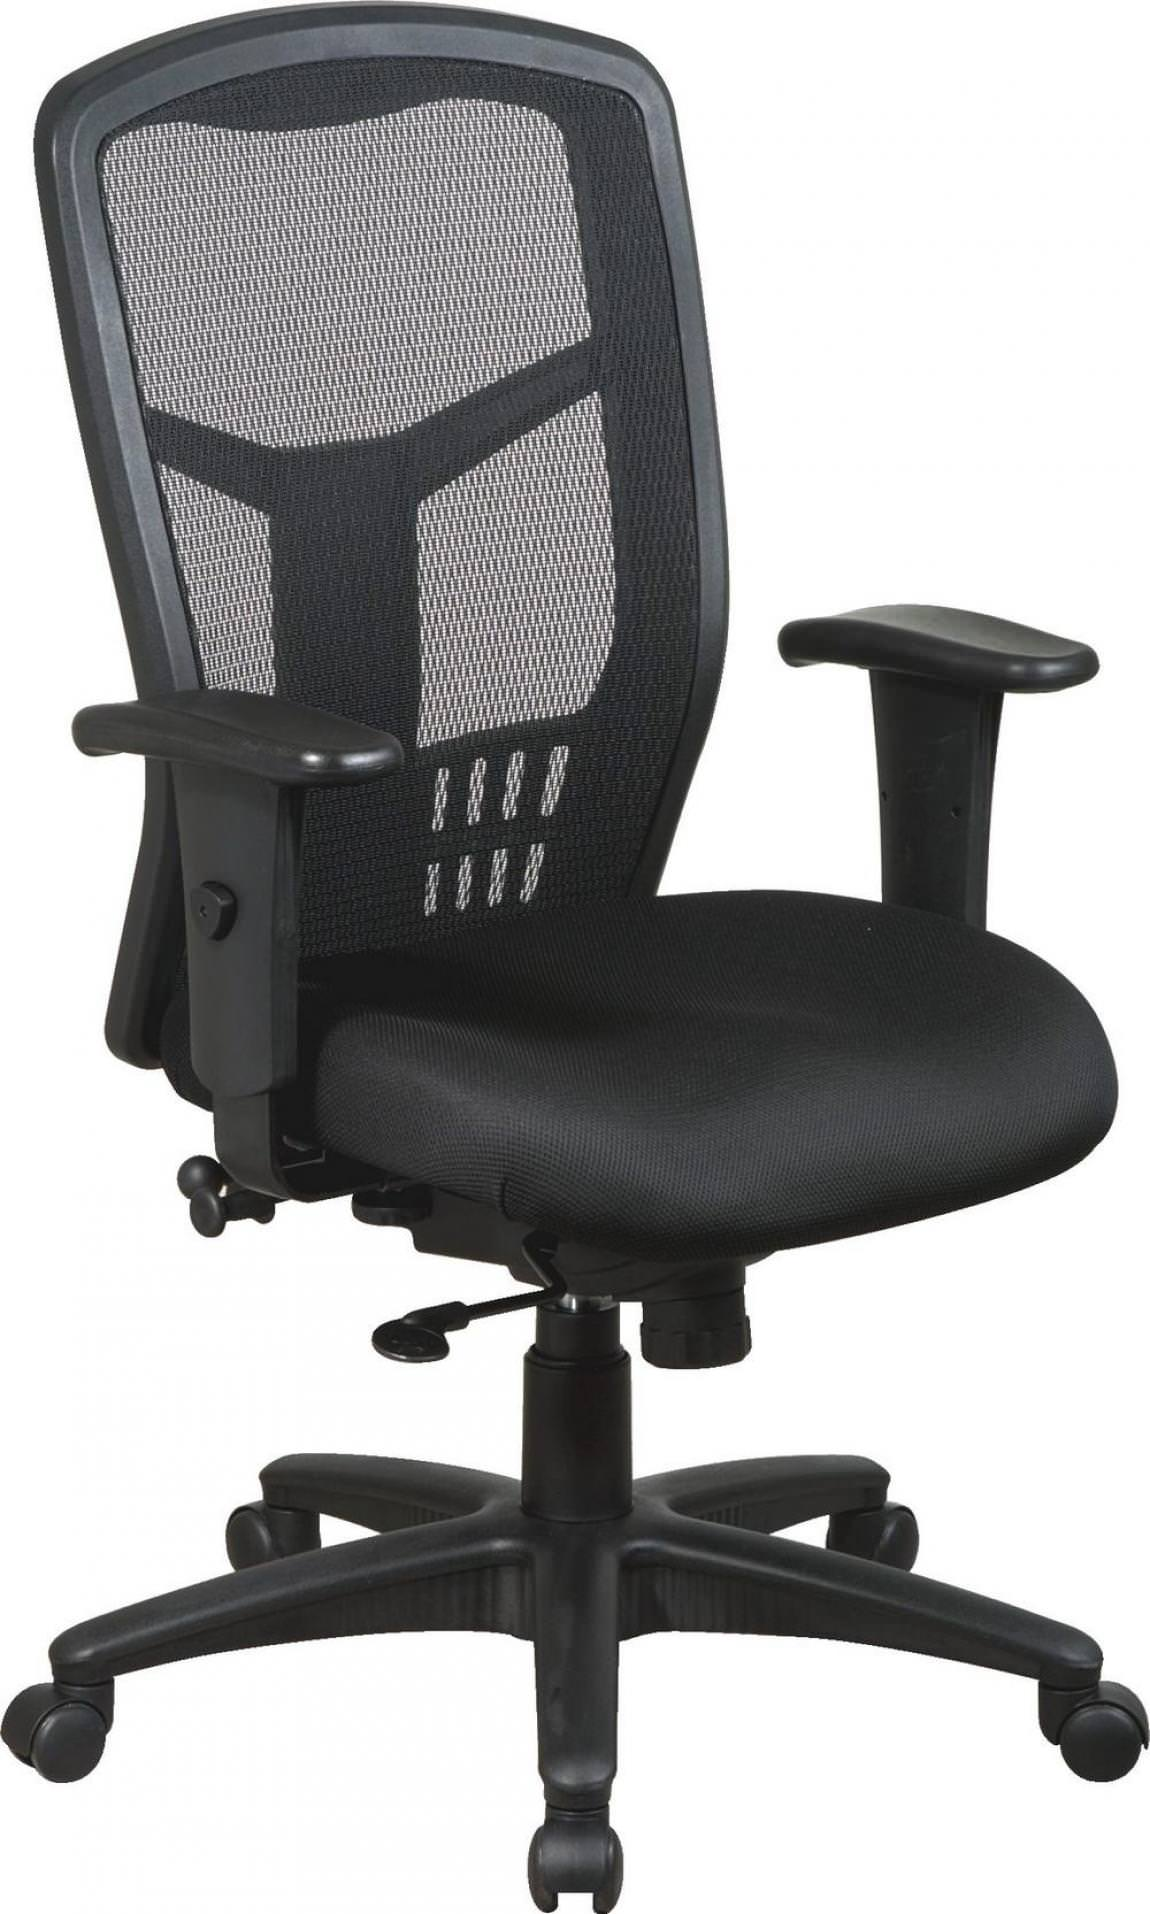 rolling chair accessories in chennai velvet purple images of black mesh adjustable office es 3957